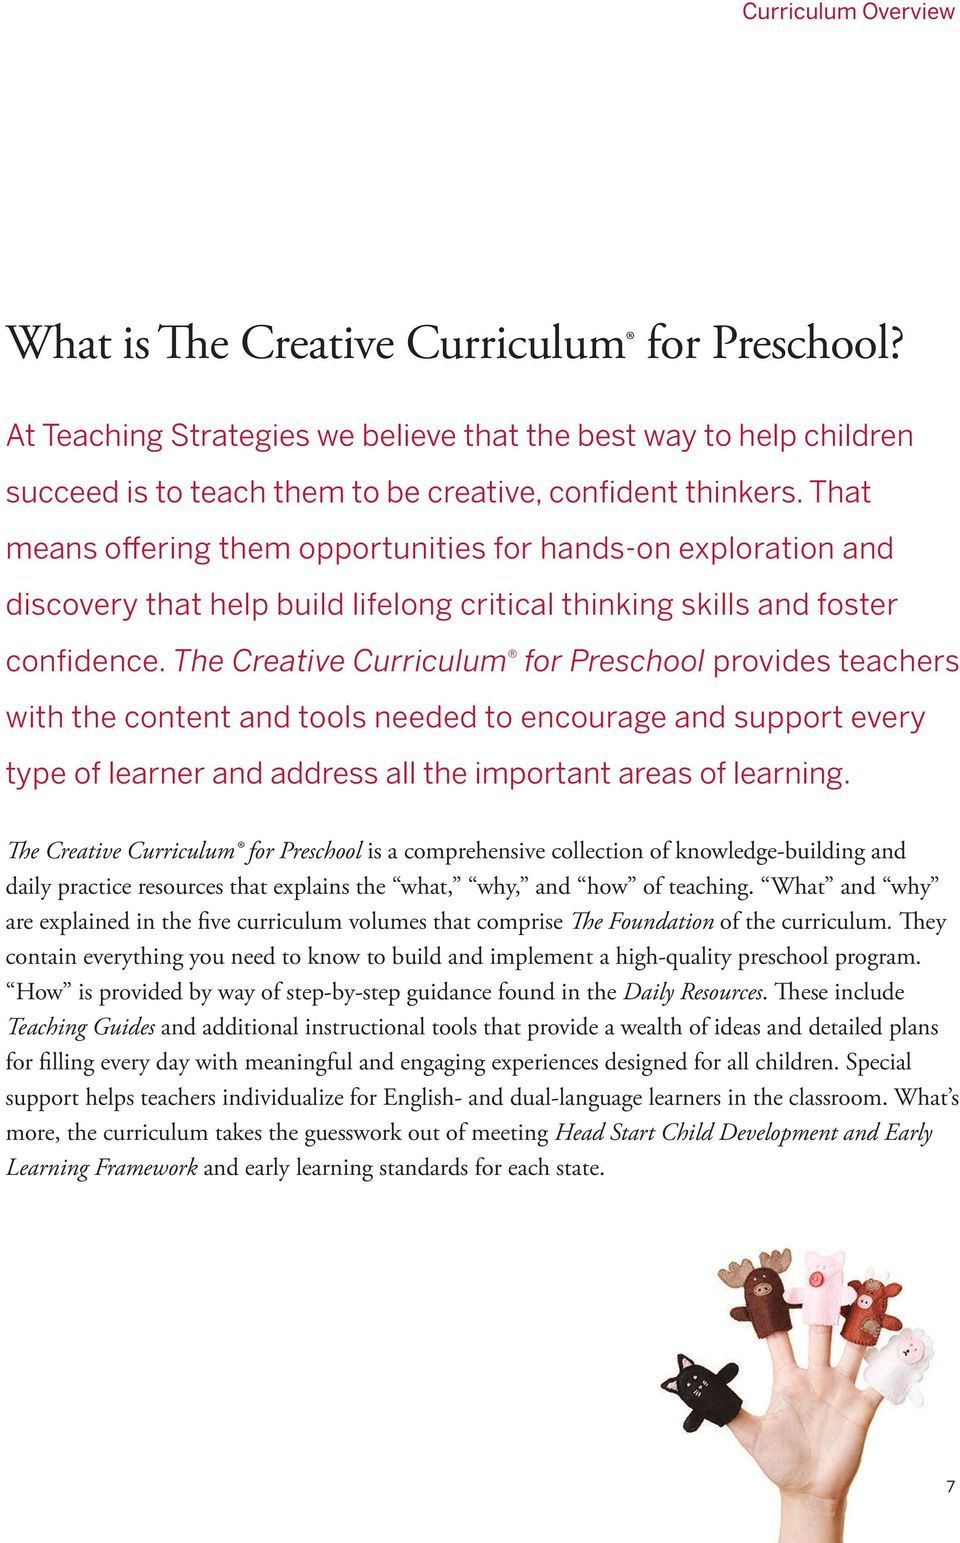 The Creative Curriculum for Preschool provides teachers with the content and tools needed to encourage and support every type of learner and address all the important areas of learning.